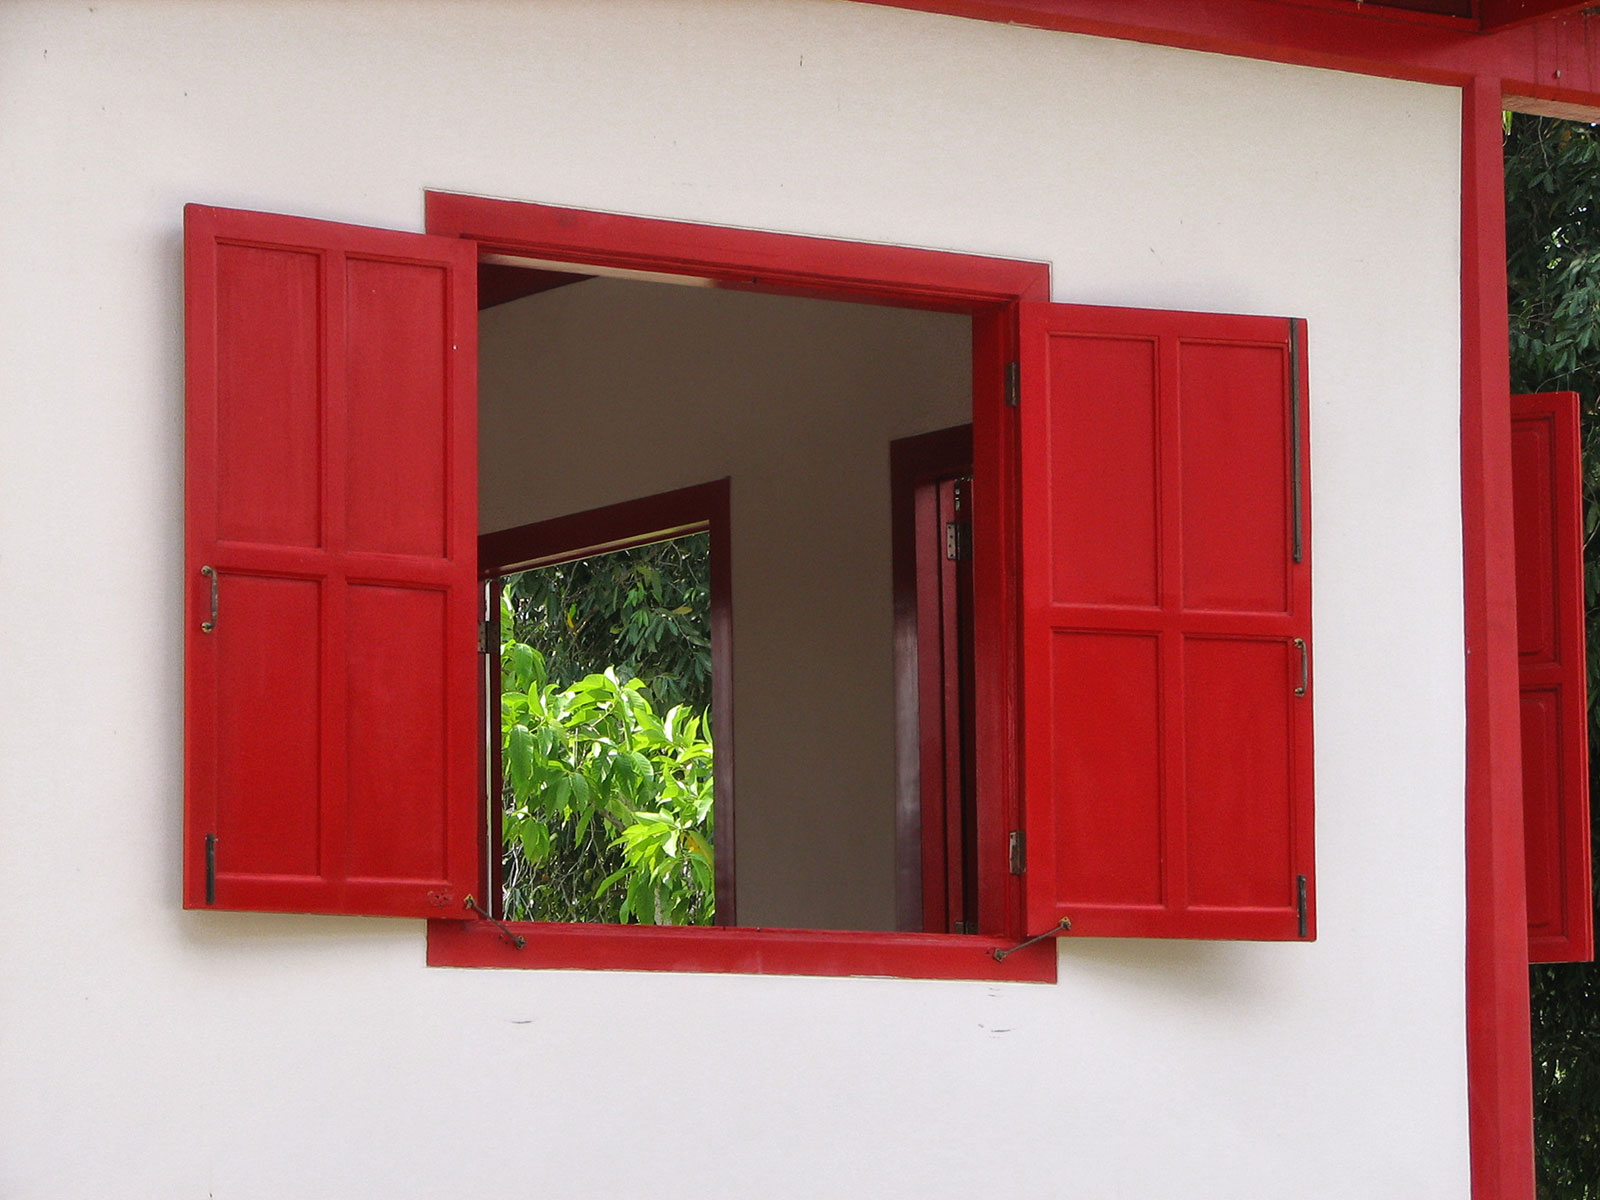 Red Window of a white building